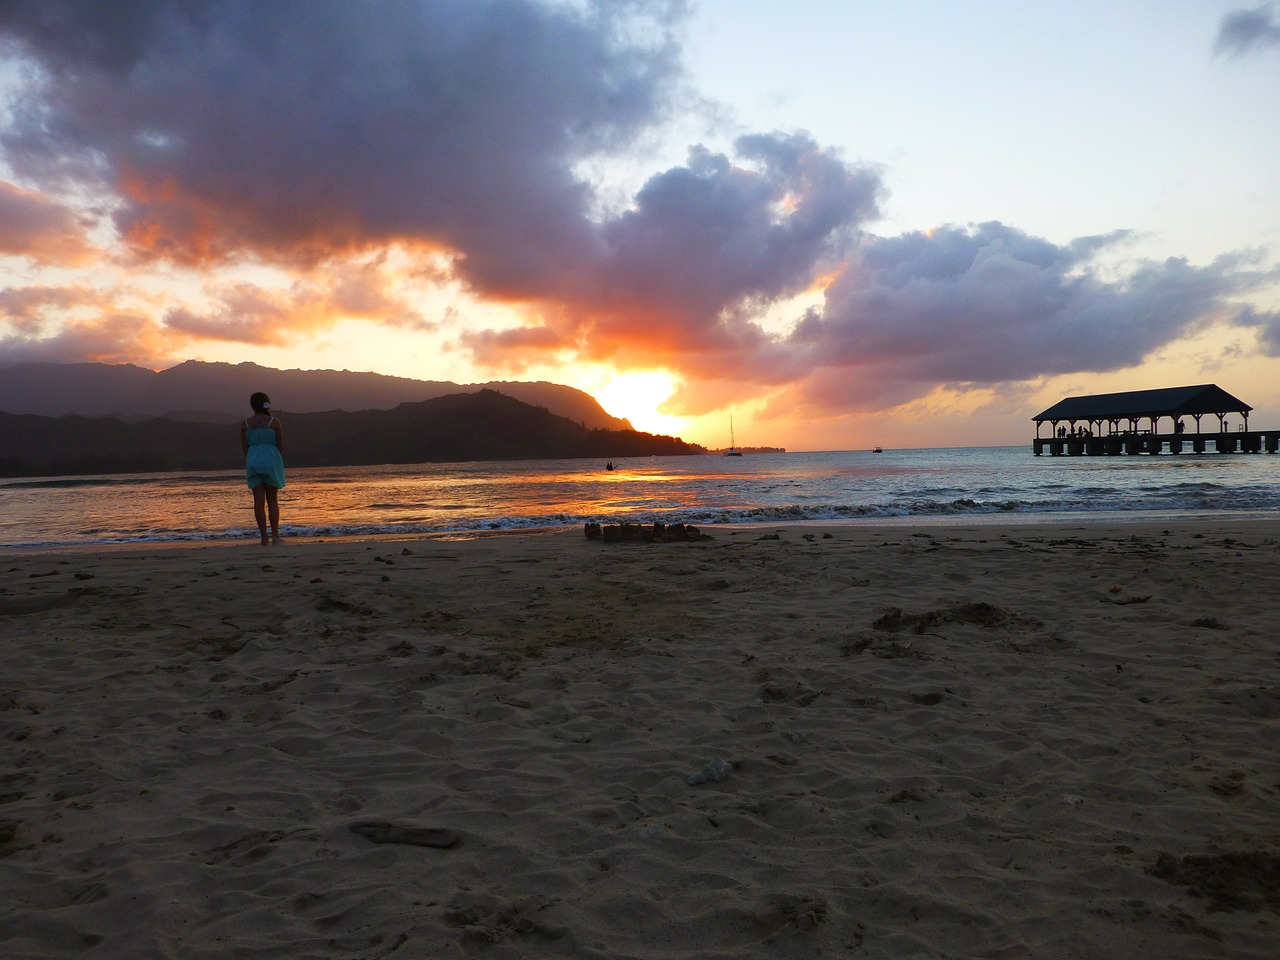 kauai hawaii beach free photo